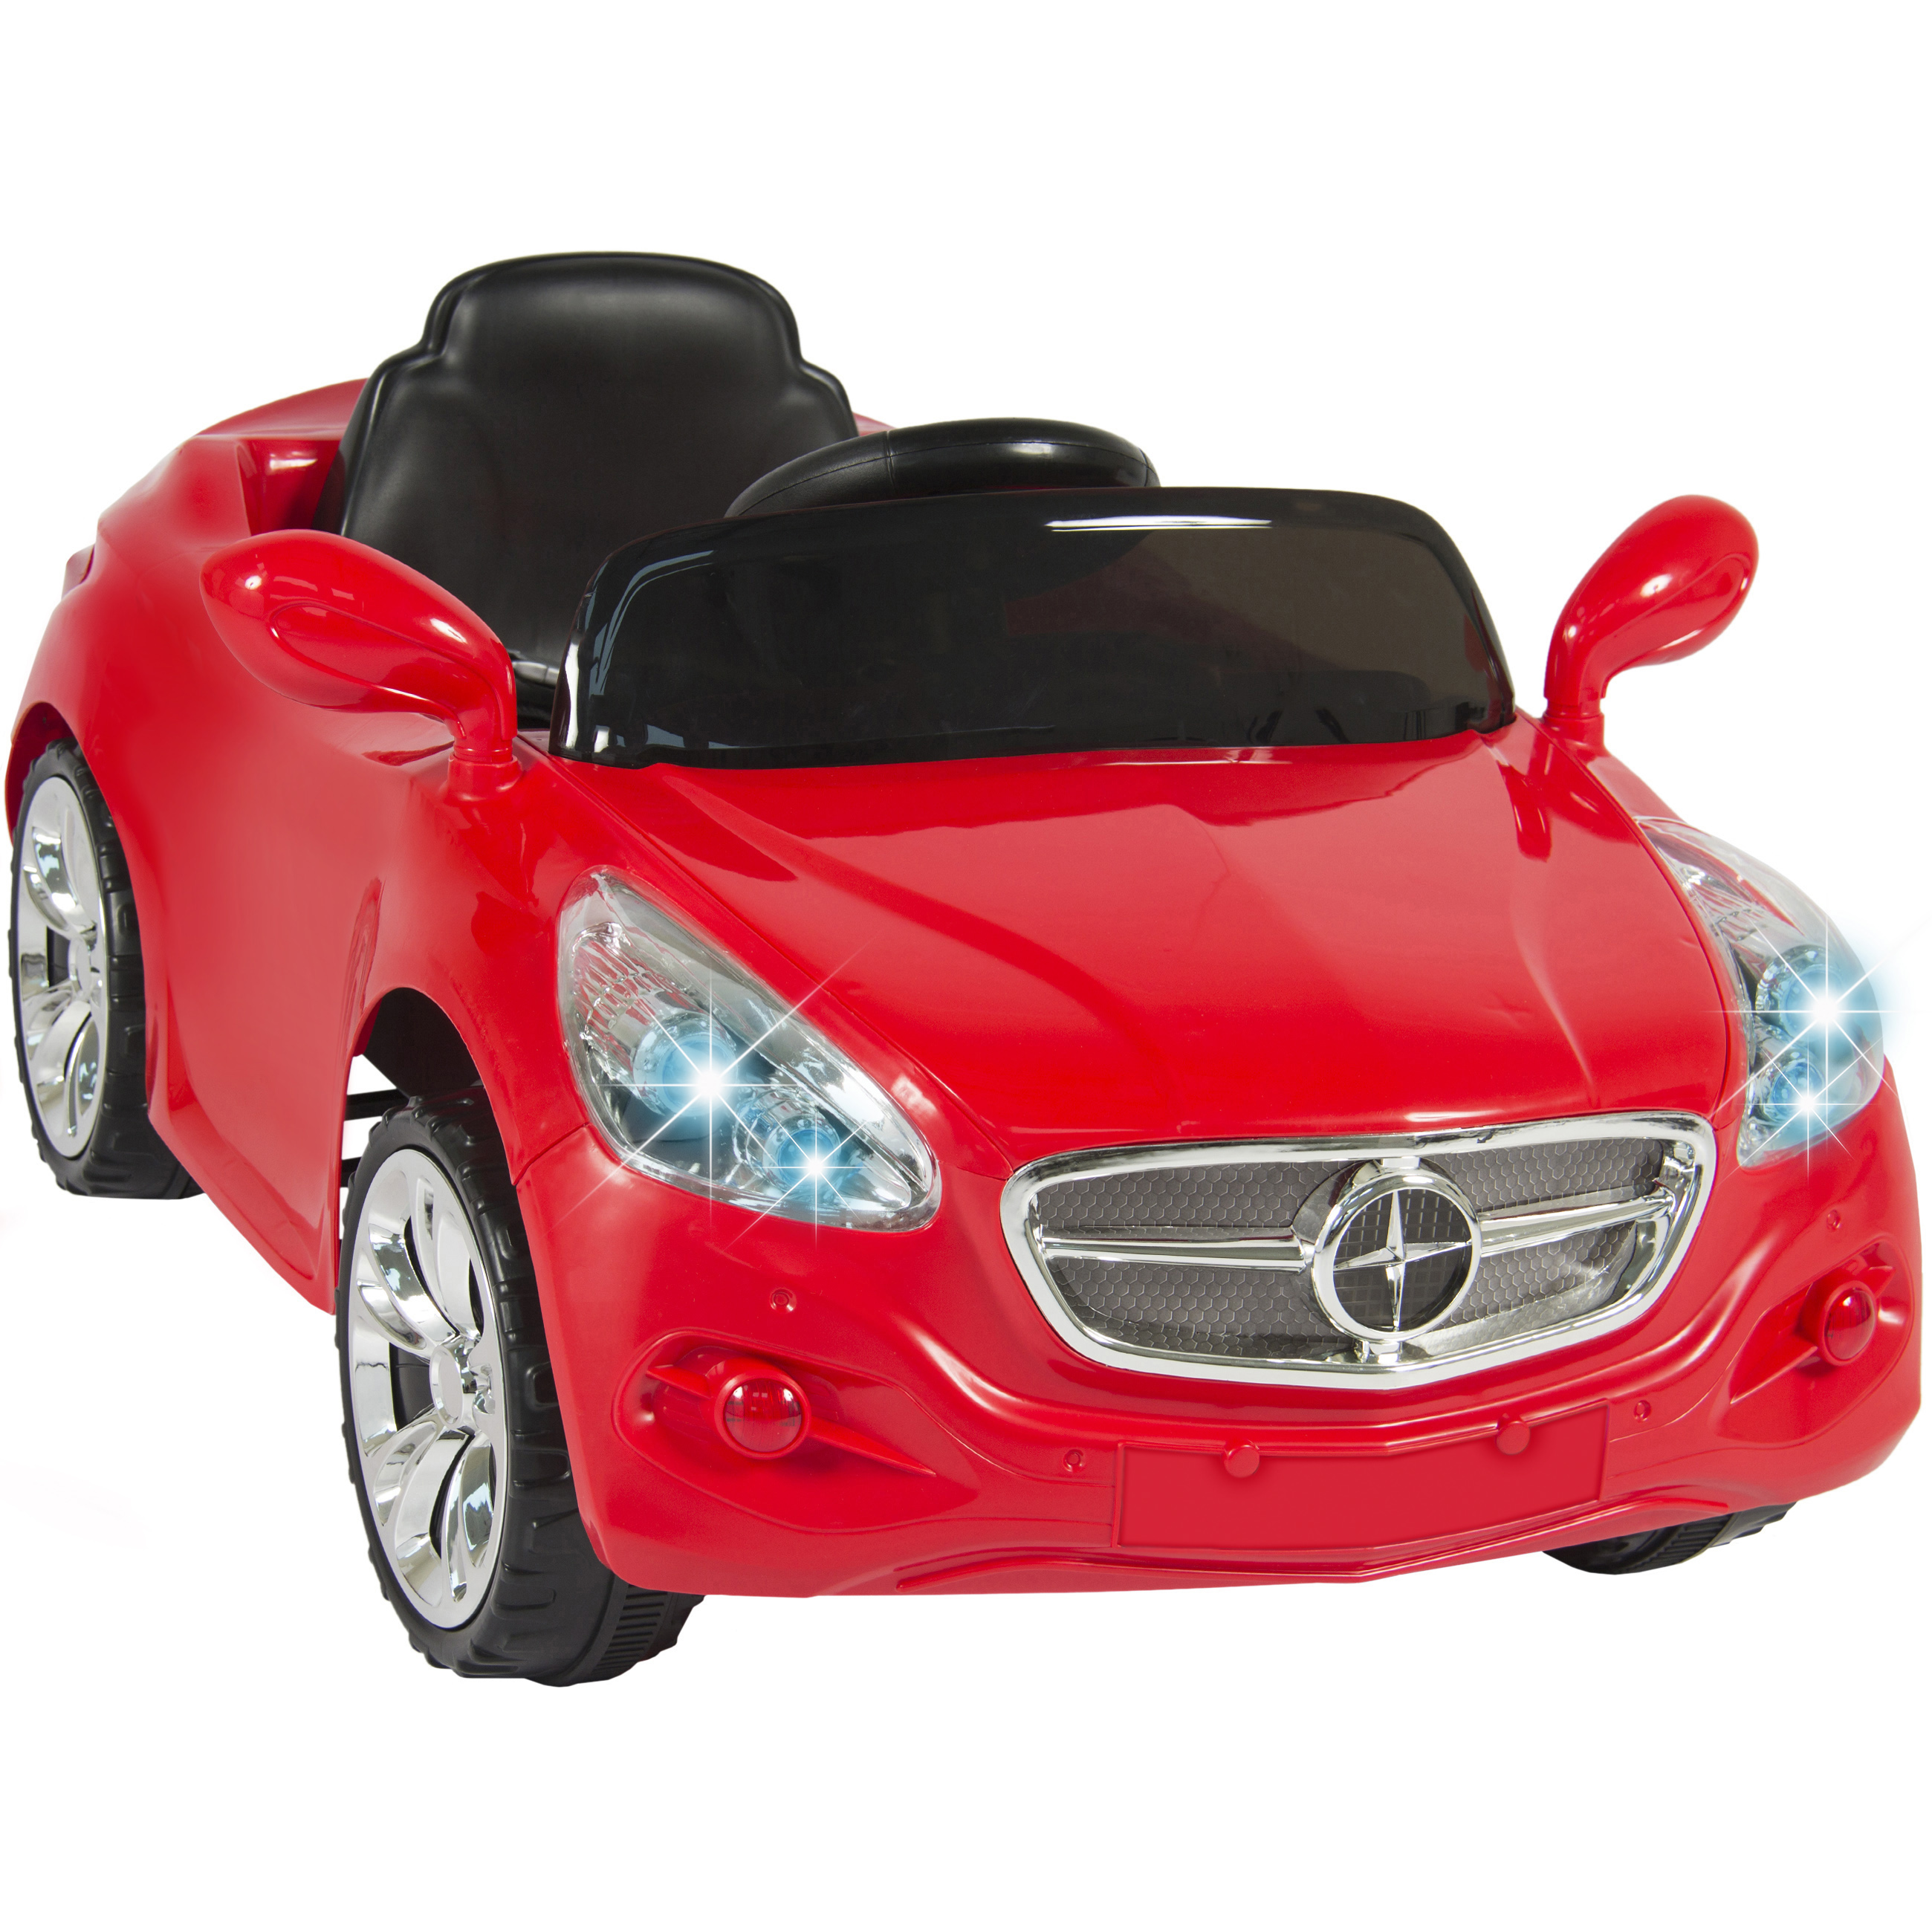 12V Ride on Car Kids RC Car Remote Control Electric Battery Power W/ Radio & MP3 Red